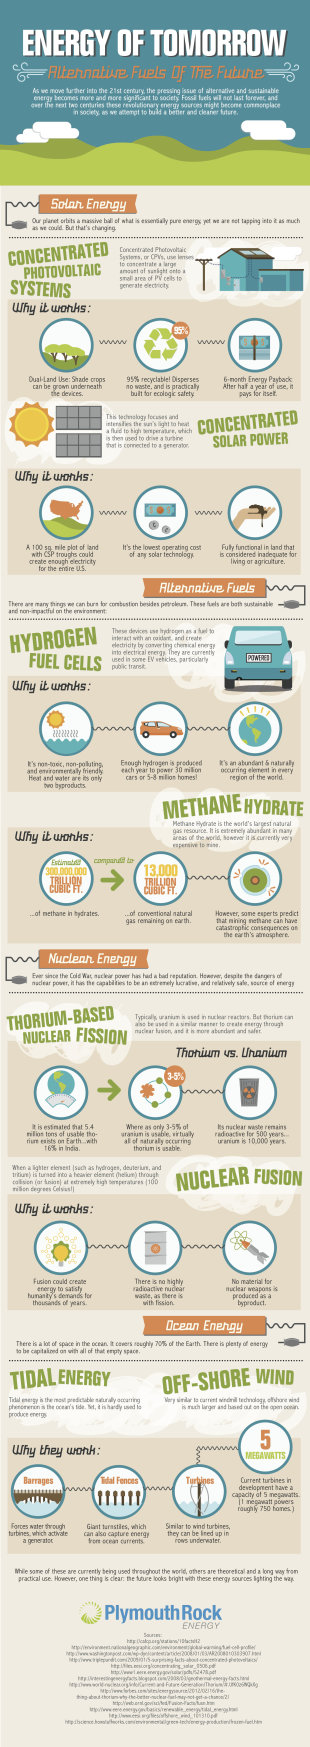 Tapping Into The Energy of Tomorrow [Infographic] image PlymouthEnergy 1stDraft14